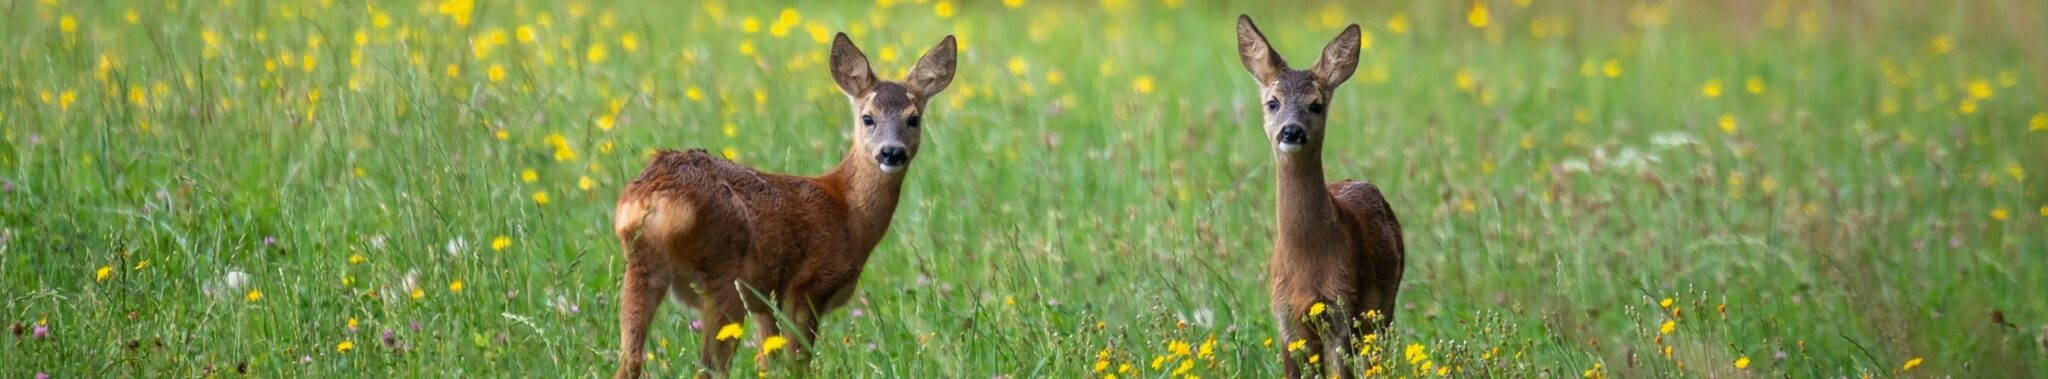 two fawns in a meadow looking at camera